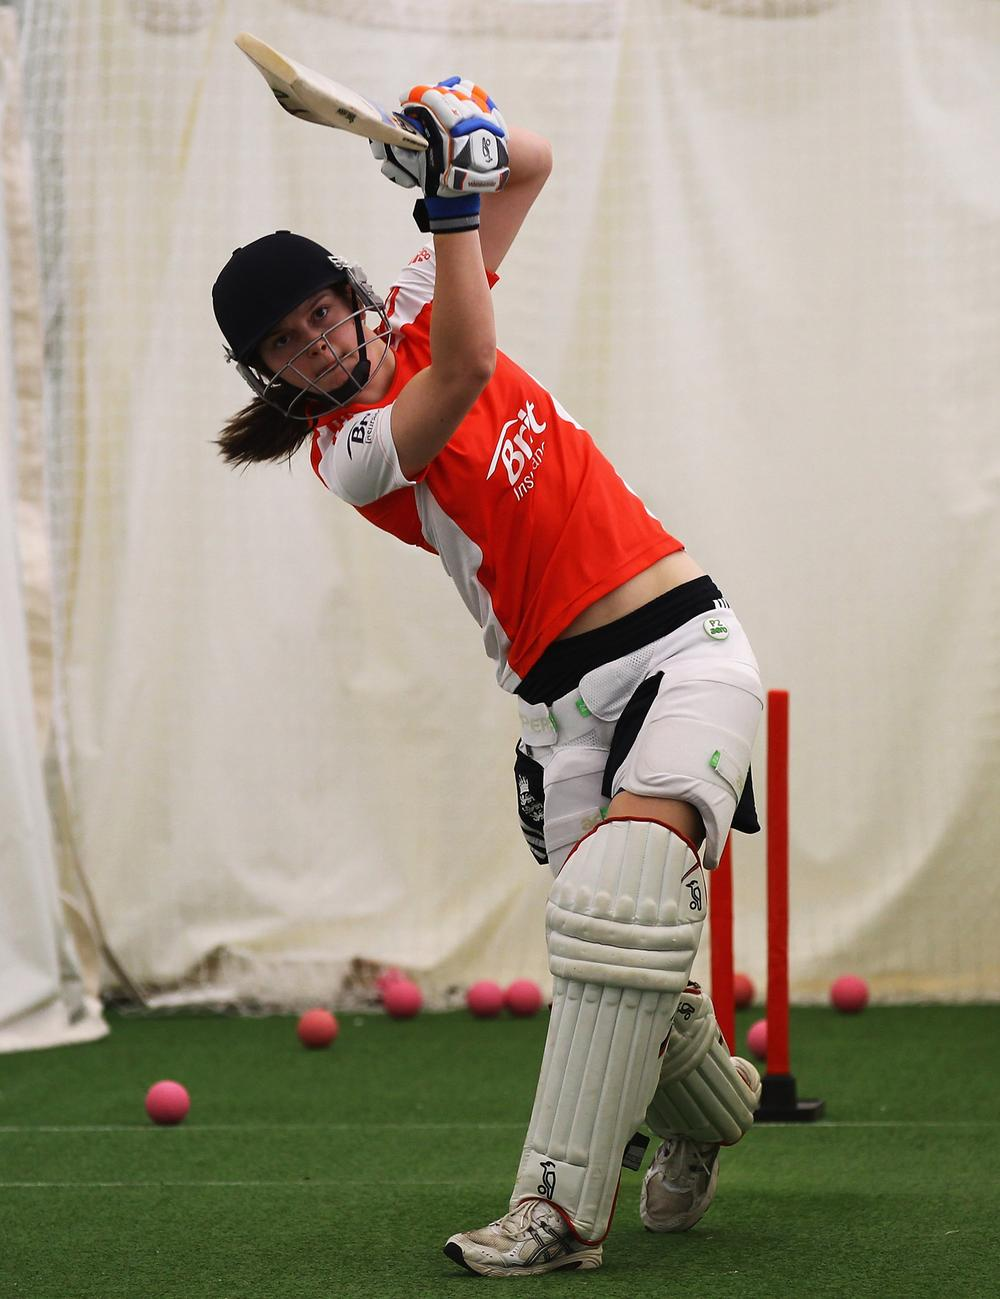 England's Amy Jones in action during an England Women's Cricket Squad training session / PIC: © www.gettyimages.co.uk